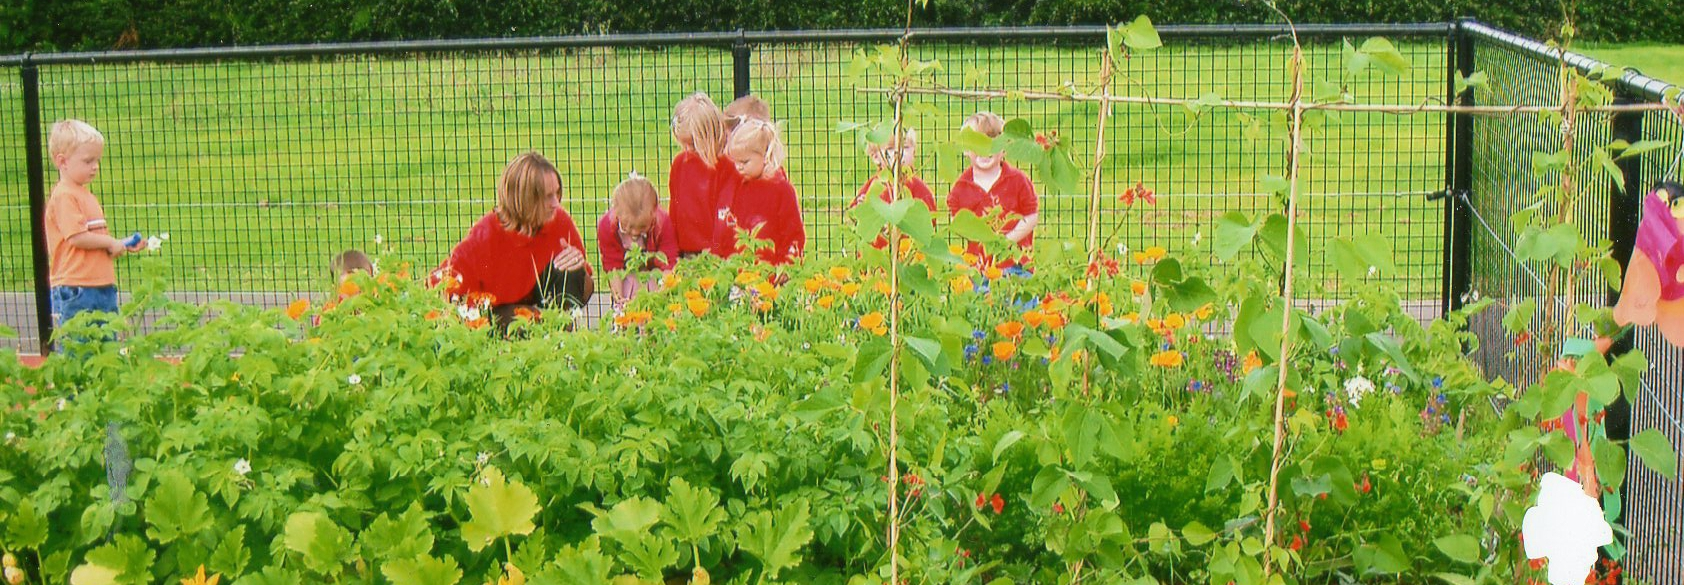 Julie-in-Veg-Patch-with-kids-e1405538231820